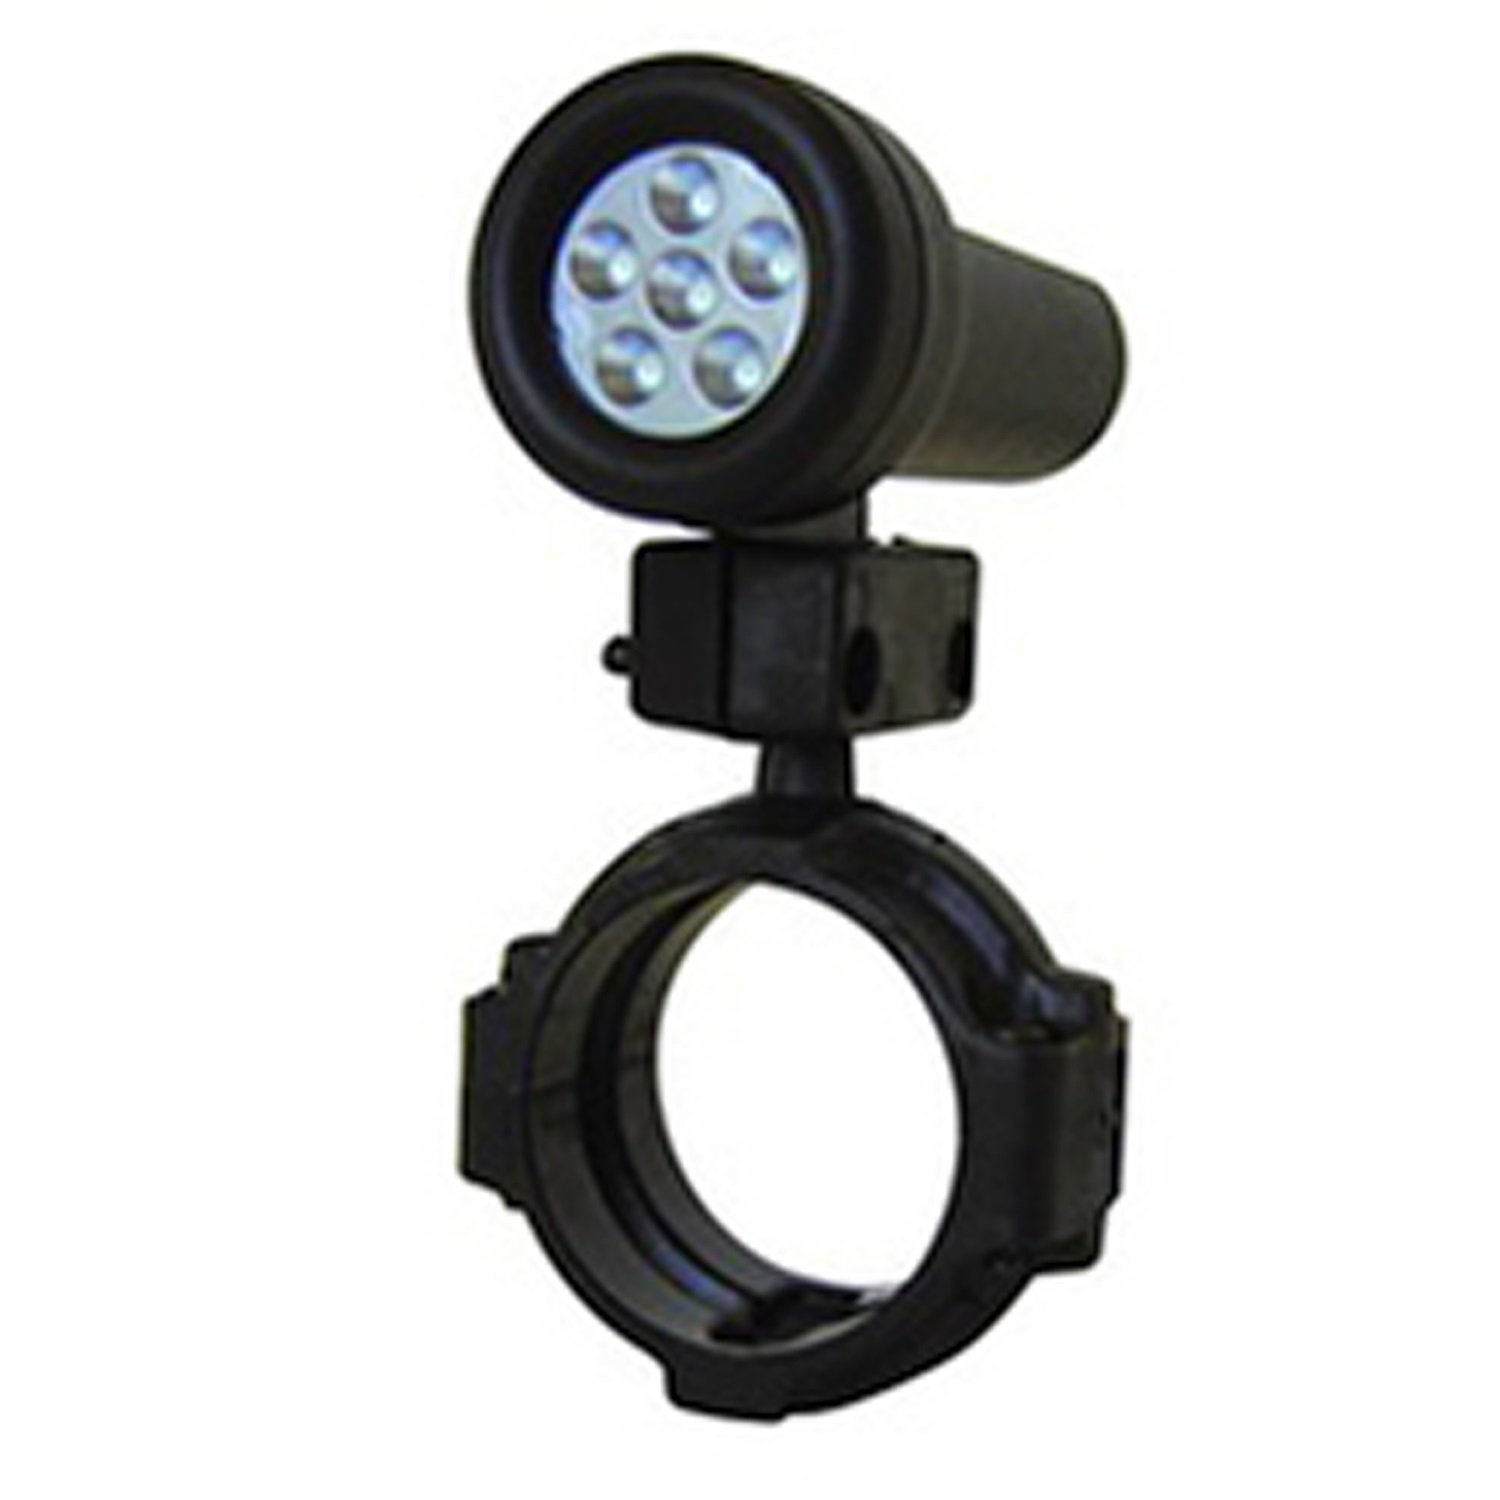 for Race Use Auto Meter 5320 Black Mini Shift Light with 1.75 Roll Cage Mount and 5 Red LED